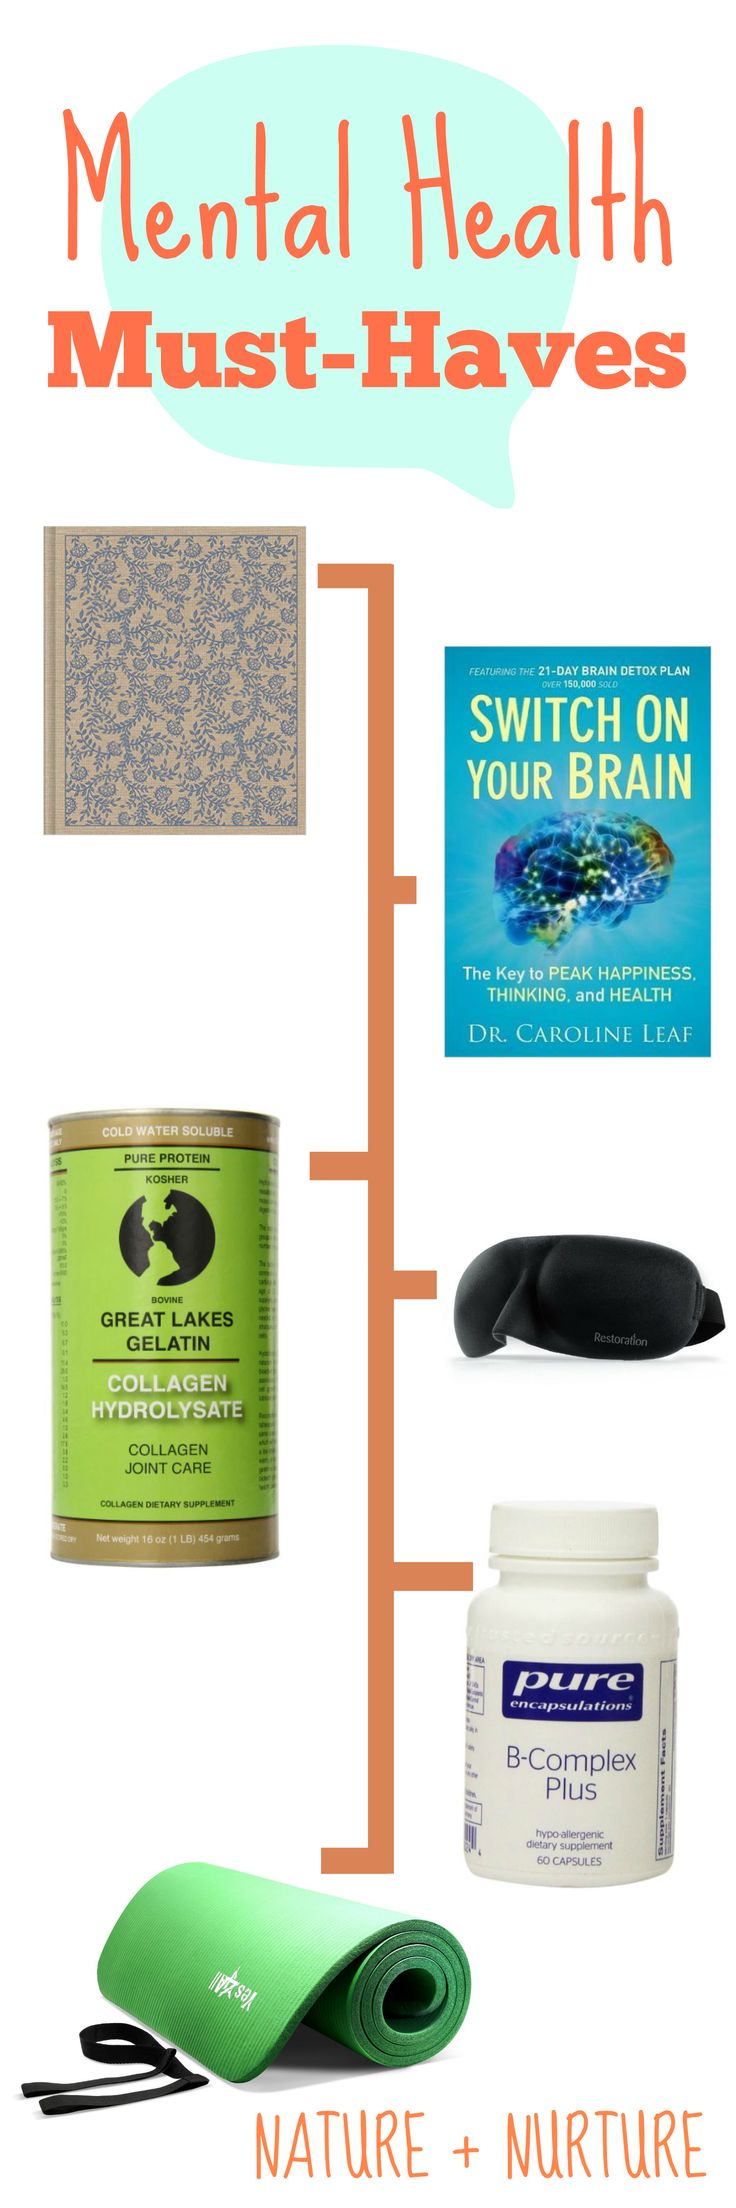 Here are some of the best tools and natural remedies  for mental health that I've come across in my journey. Click to learn more and start feeling better!